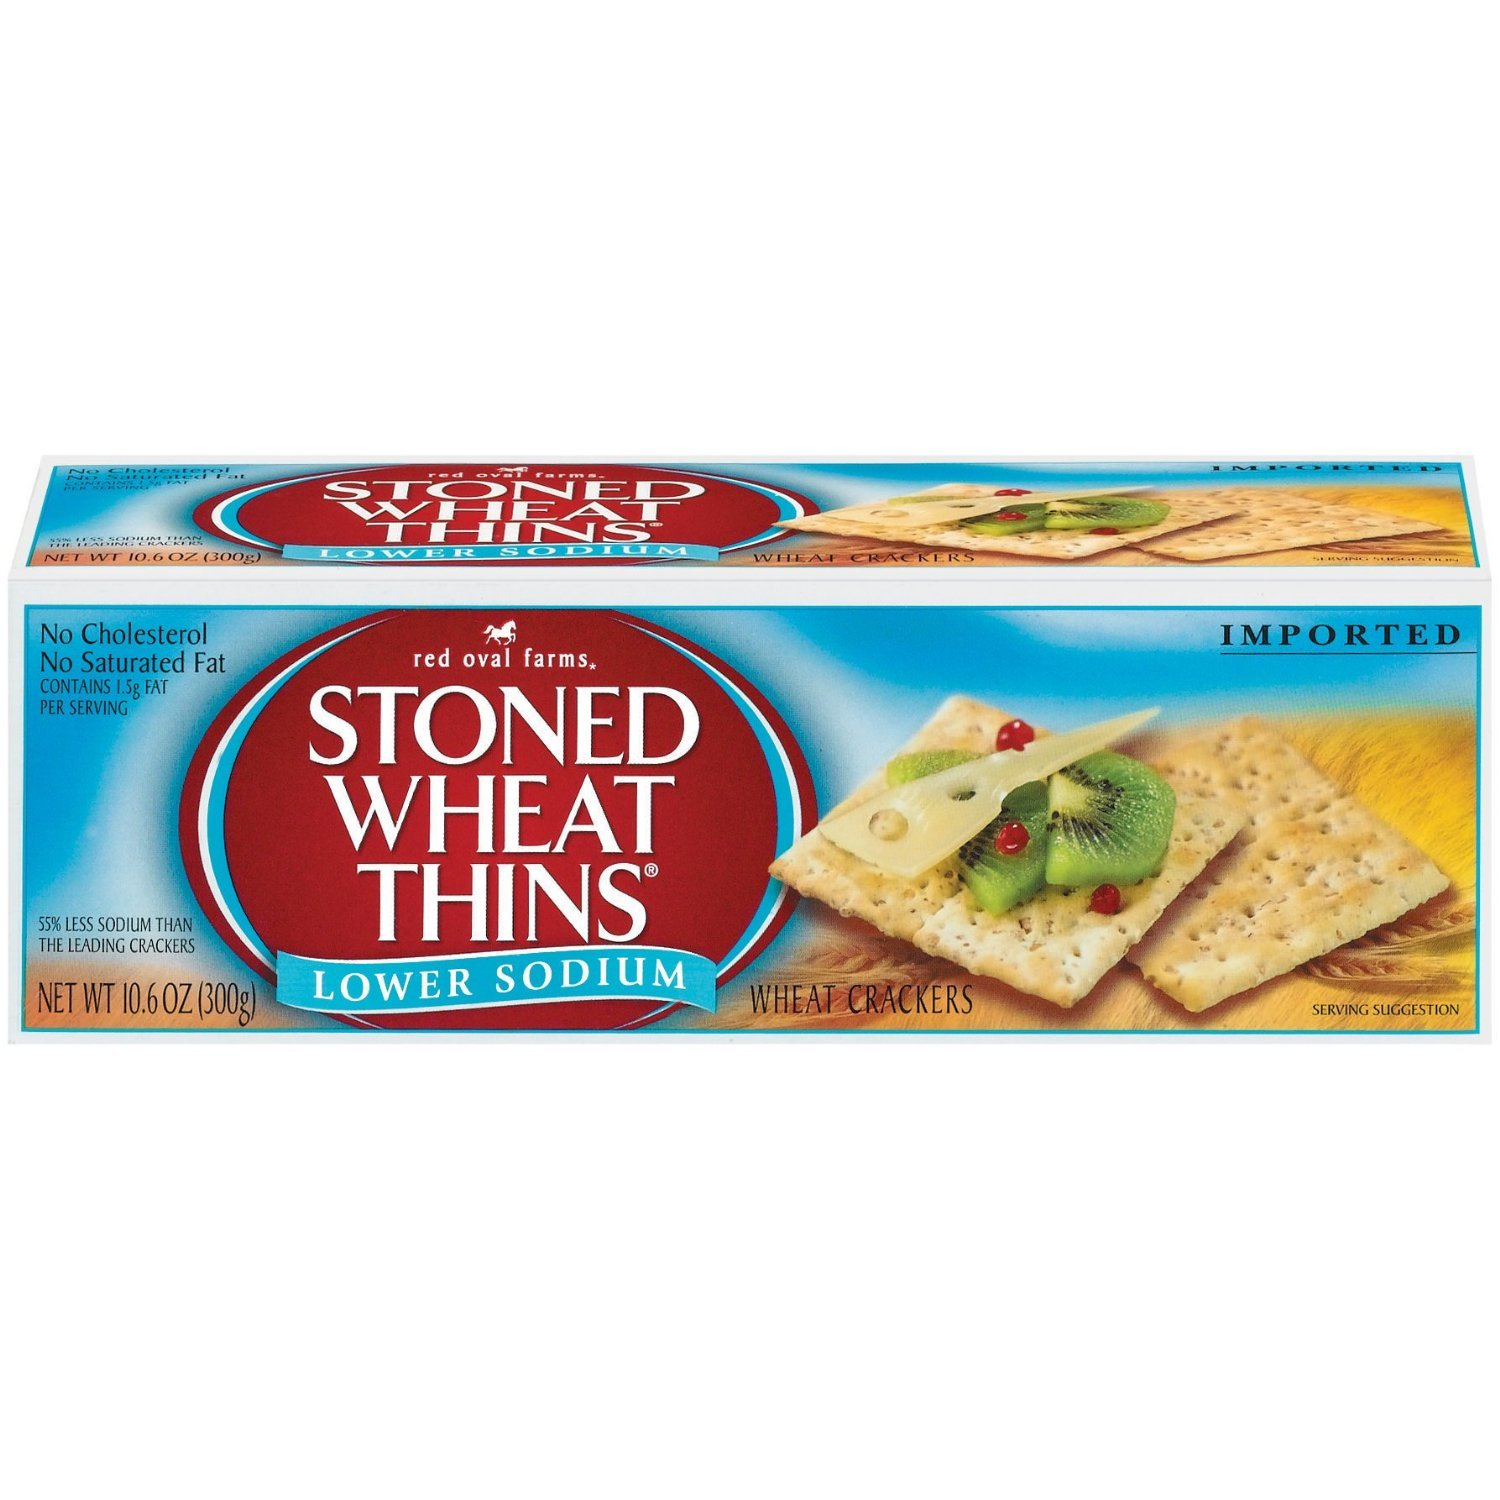 Stoned Wheat Thins, Low Sodium, 10.6-Ounce Boxes (Pack of 6)